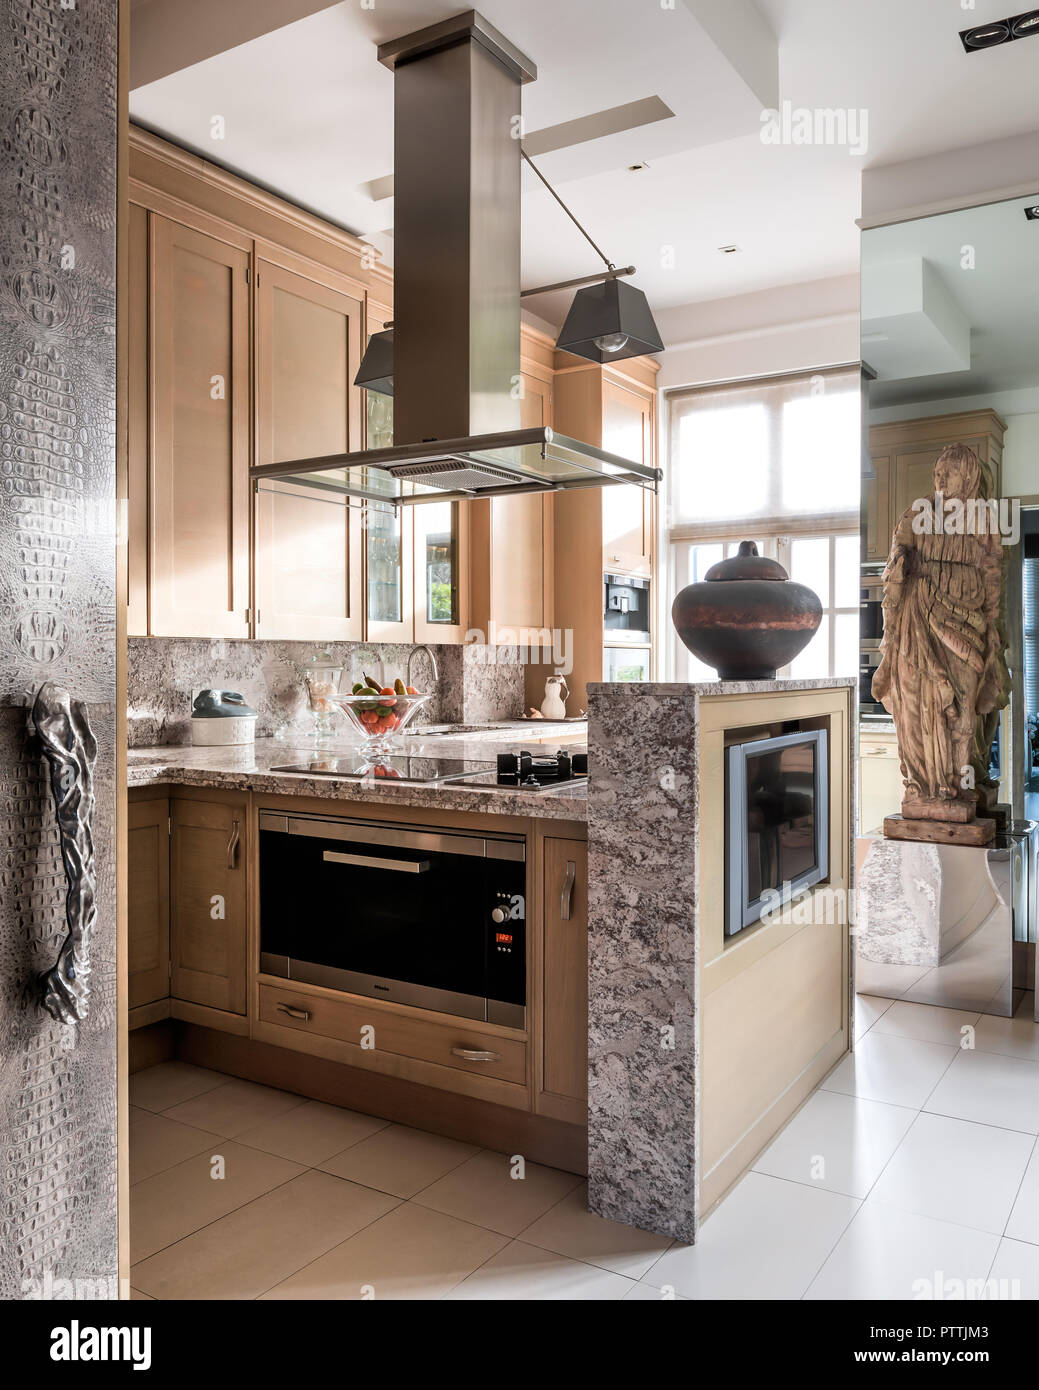 17th century carved oak figure in modern kitchen with stainless steel extractor - Stock Image